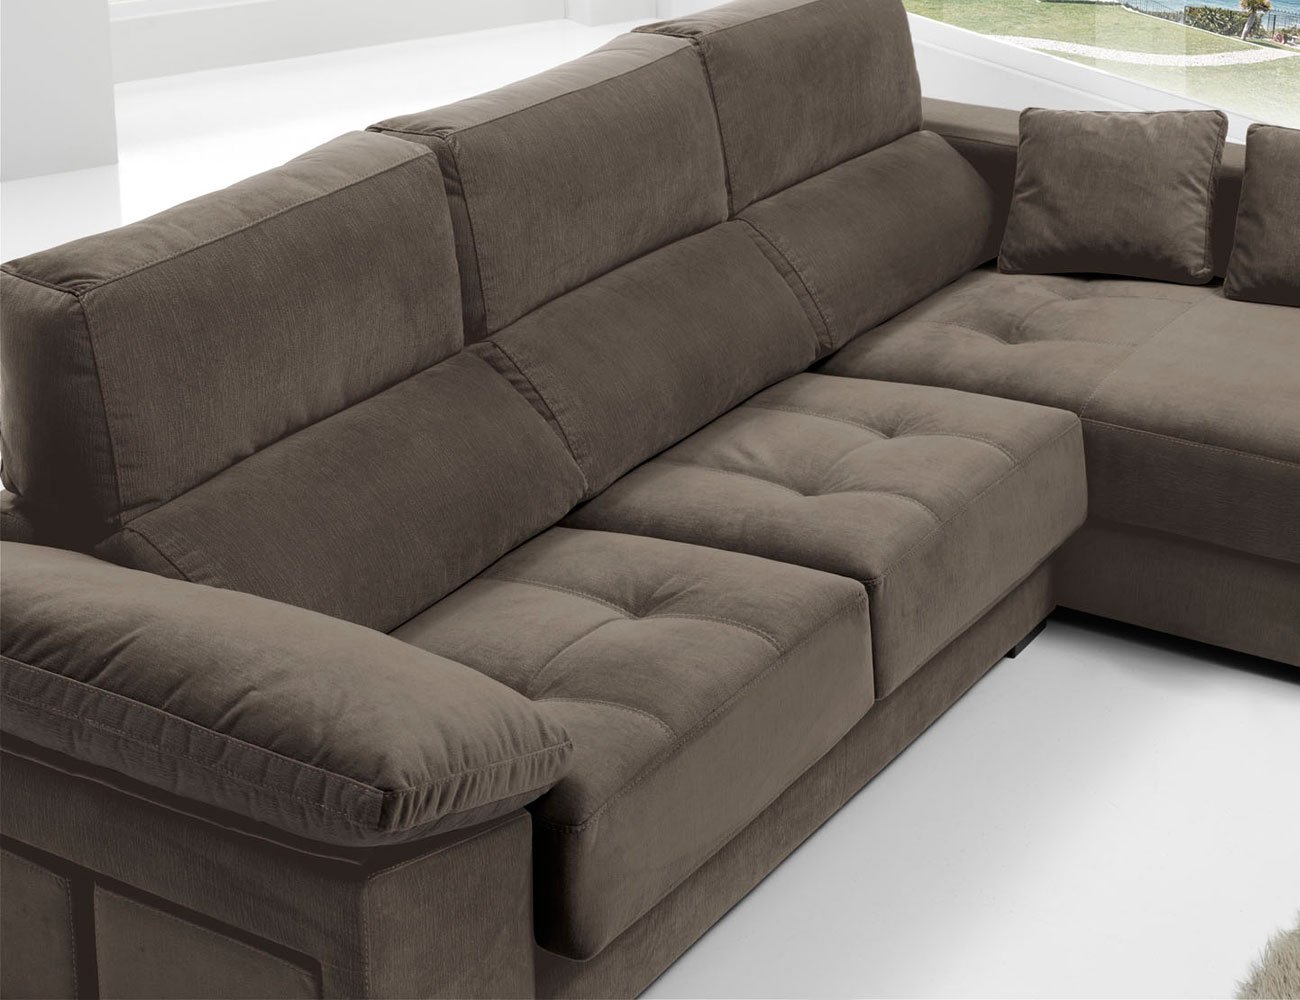 Sofa chaiselongue anti manchas bering pouf 237